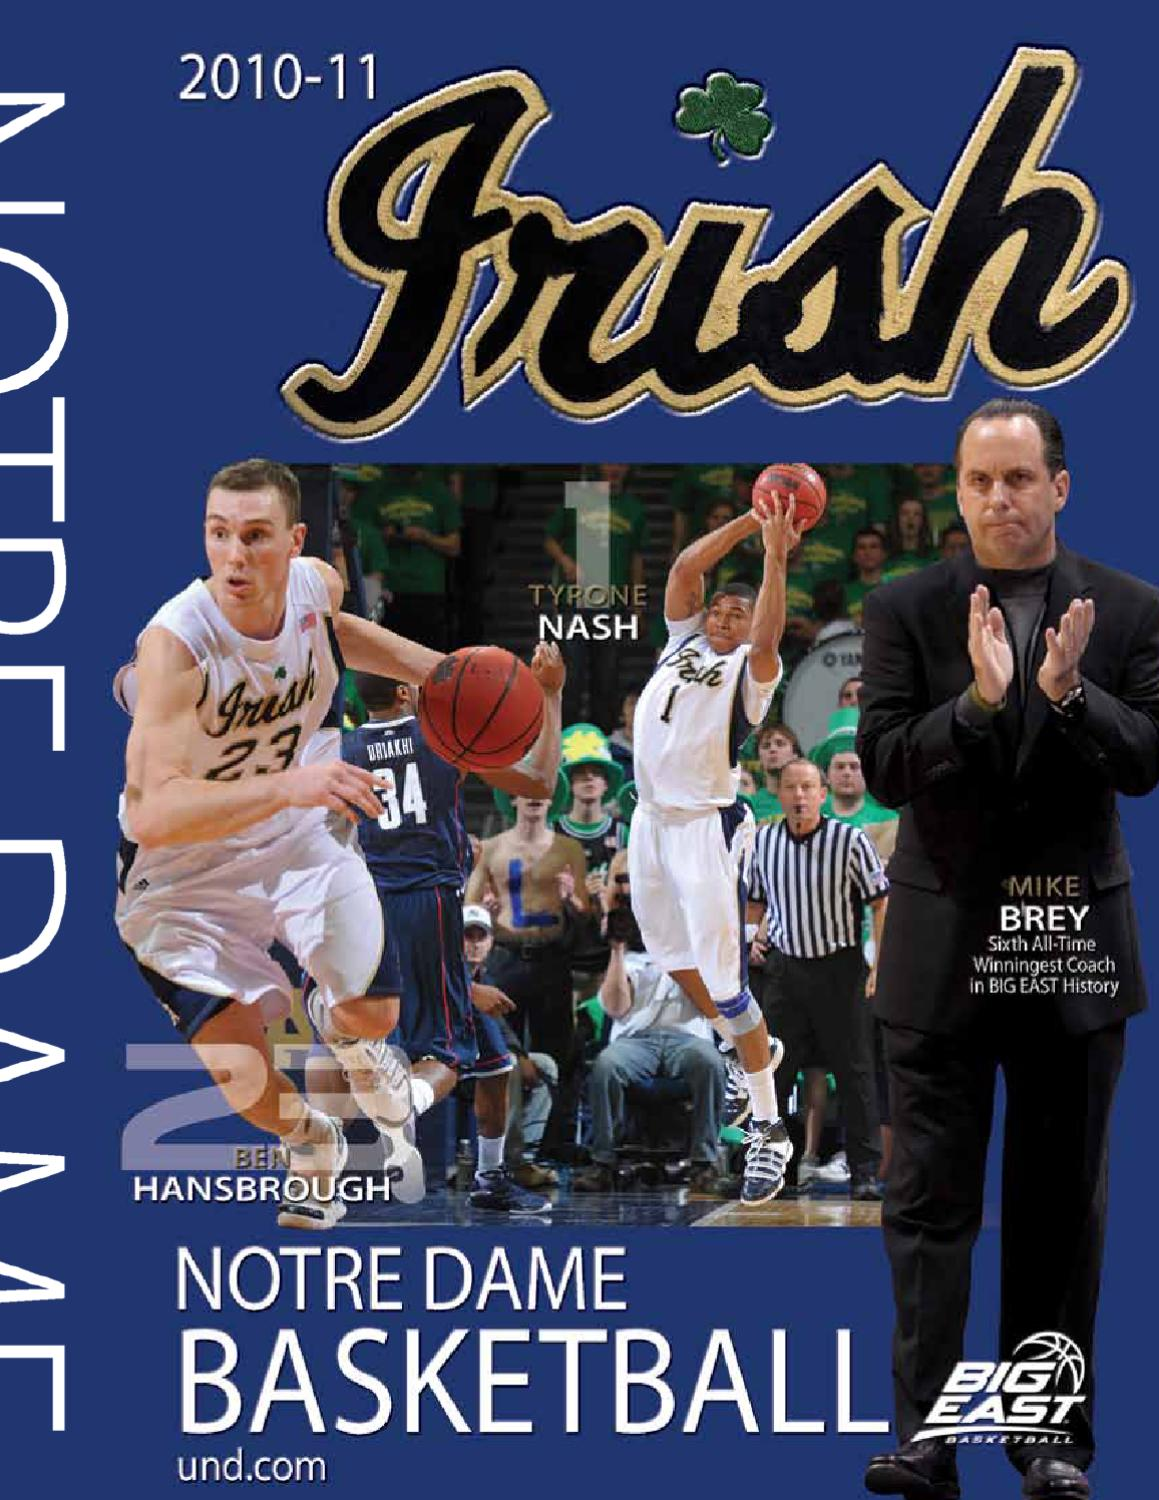 d6029d8cd9d4 2010-11 Notre Dame Men s Basketball Media Guide by Chris Masters - issuu